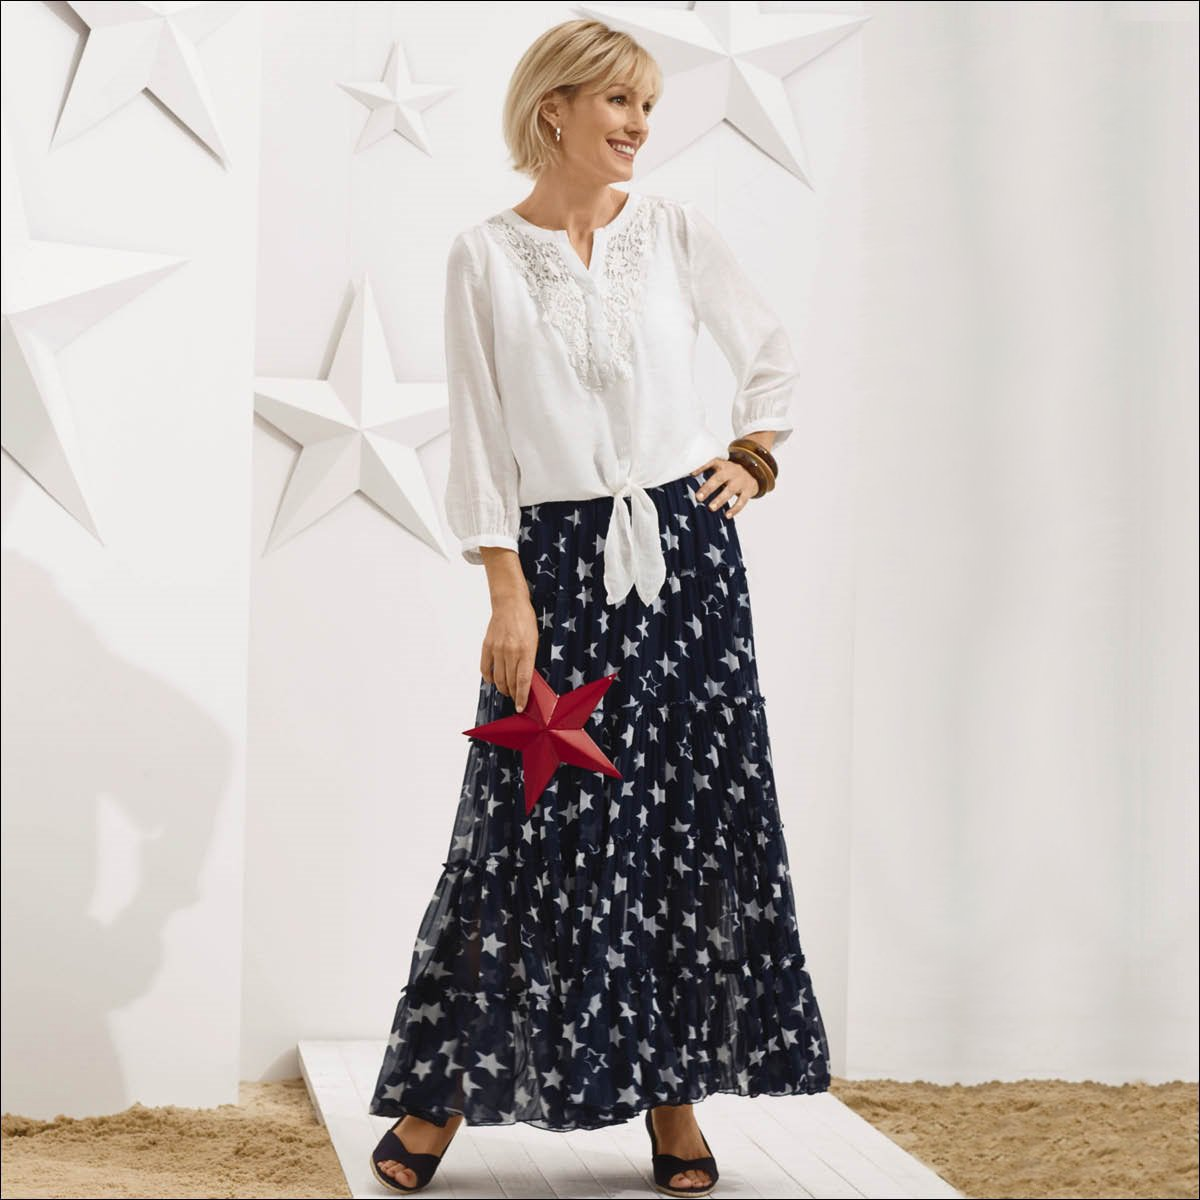 #Summer is all about being a #style #star! Shop THE LOOK:  http:// bit.ly/GetLoveLive  &nbsp;    #getit #loveit #liveit #thelook #casual #ootd #styles <br>http://pic.twitter.com/57M7ZchbMh